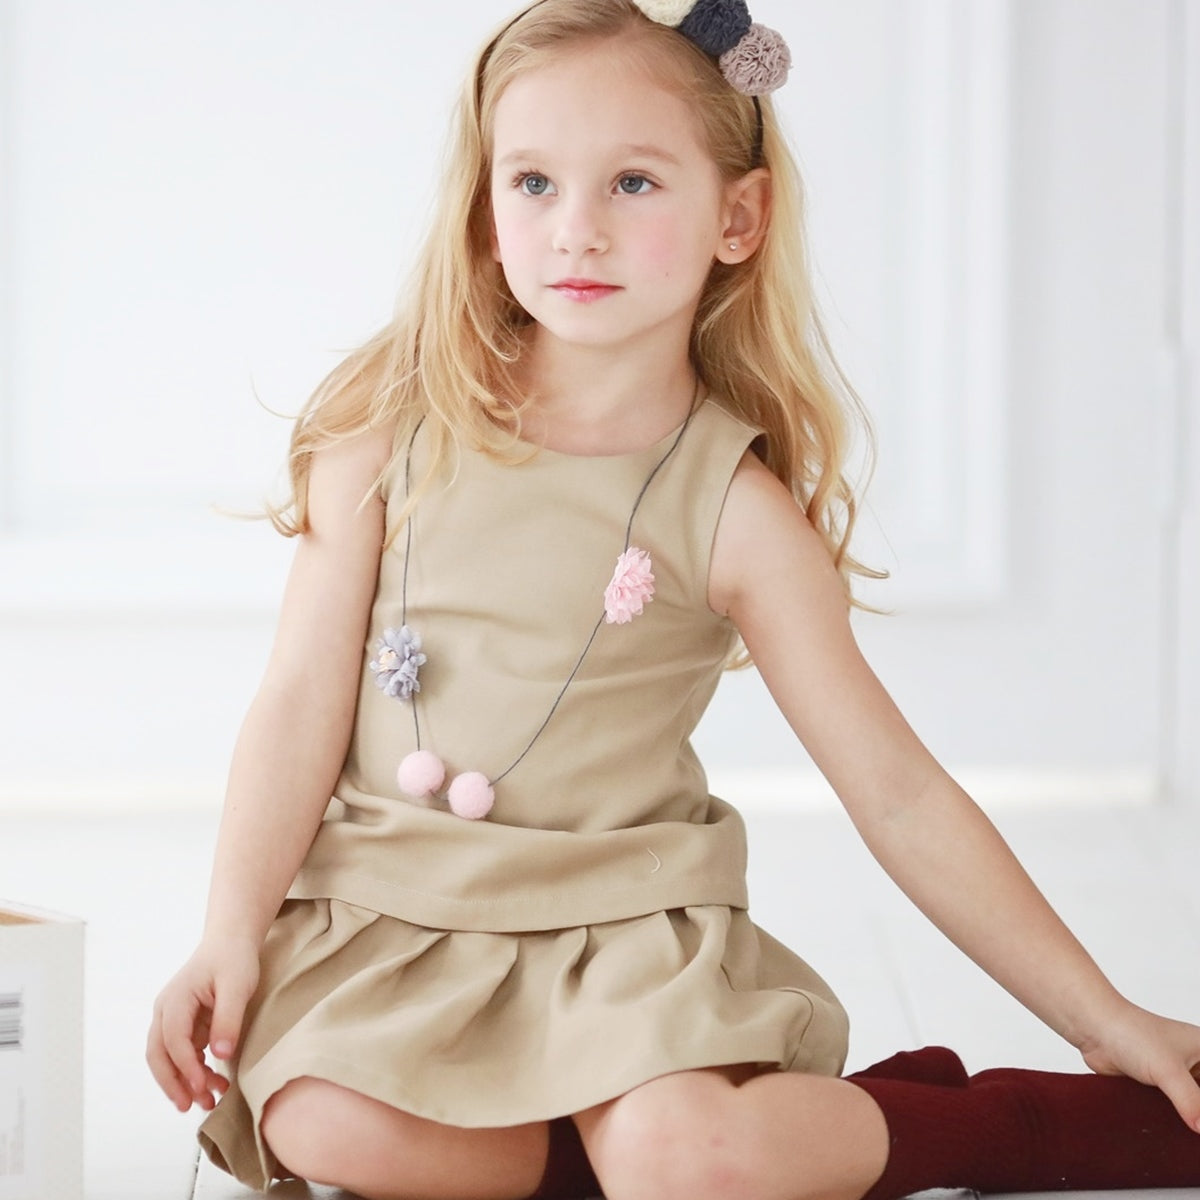 (Mommy & Me) Elegant sleeveless dress (set of 2) - Bunny n Bloom Mommy & Me Dress